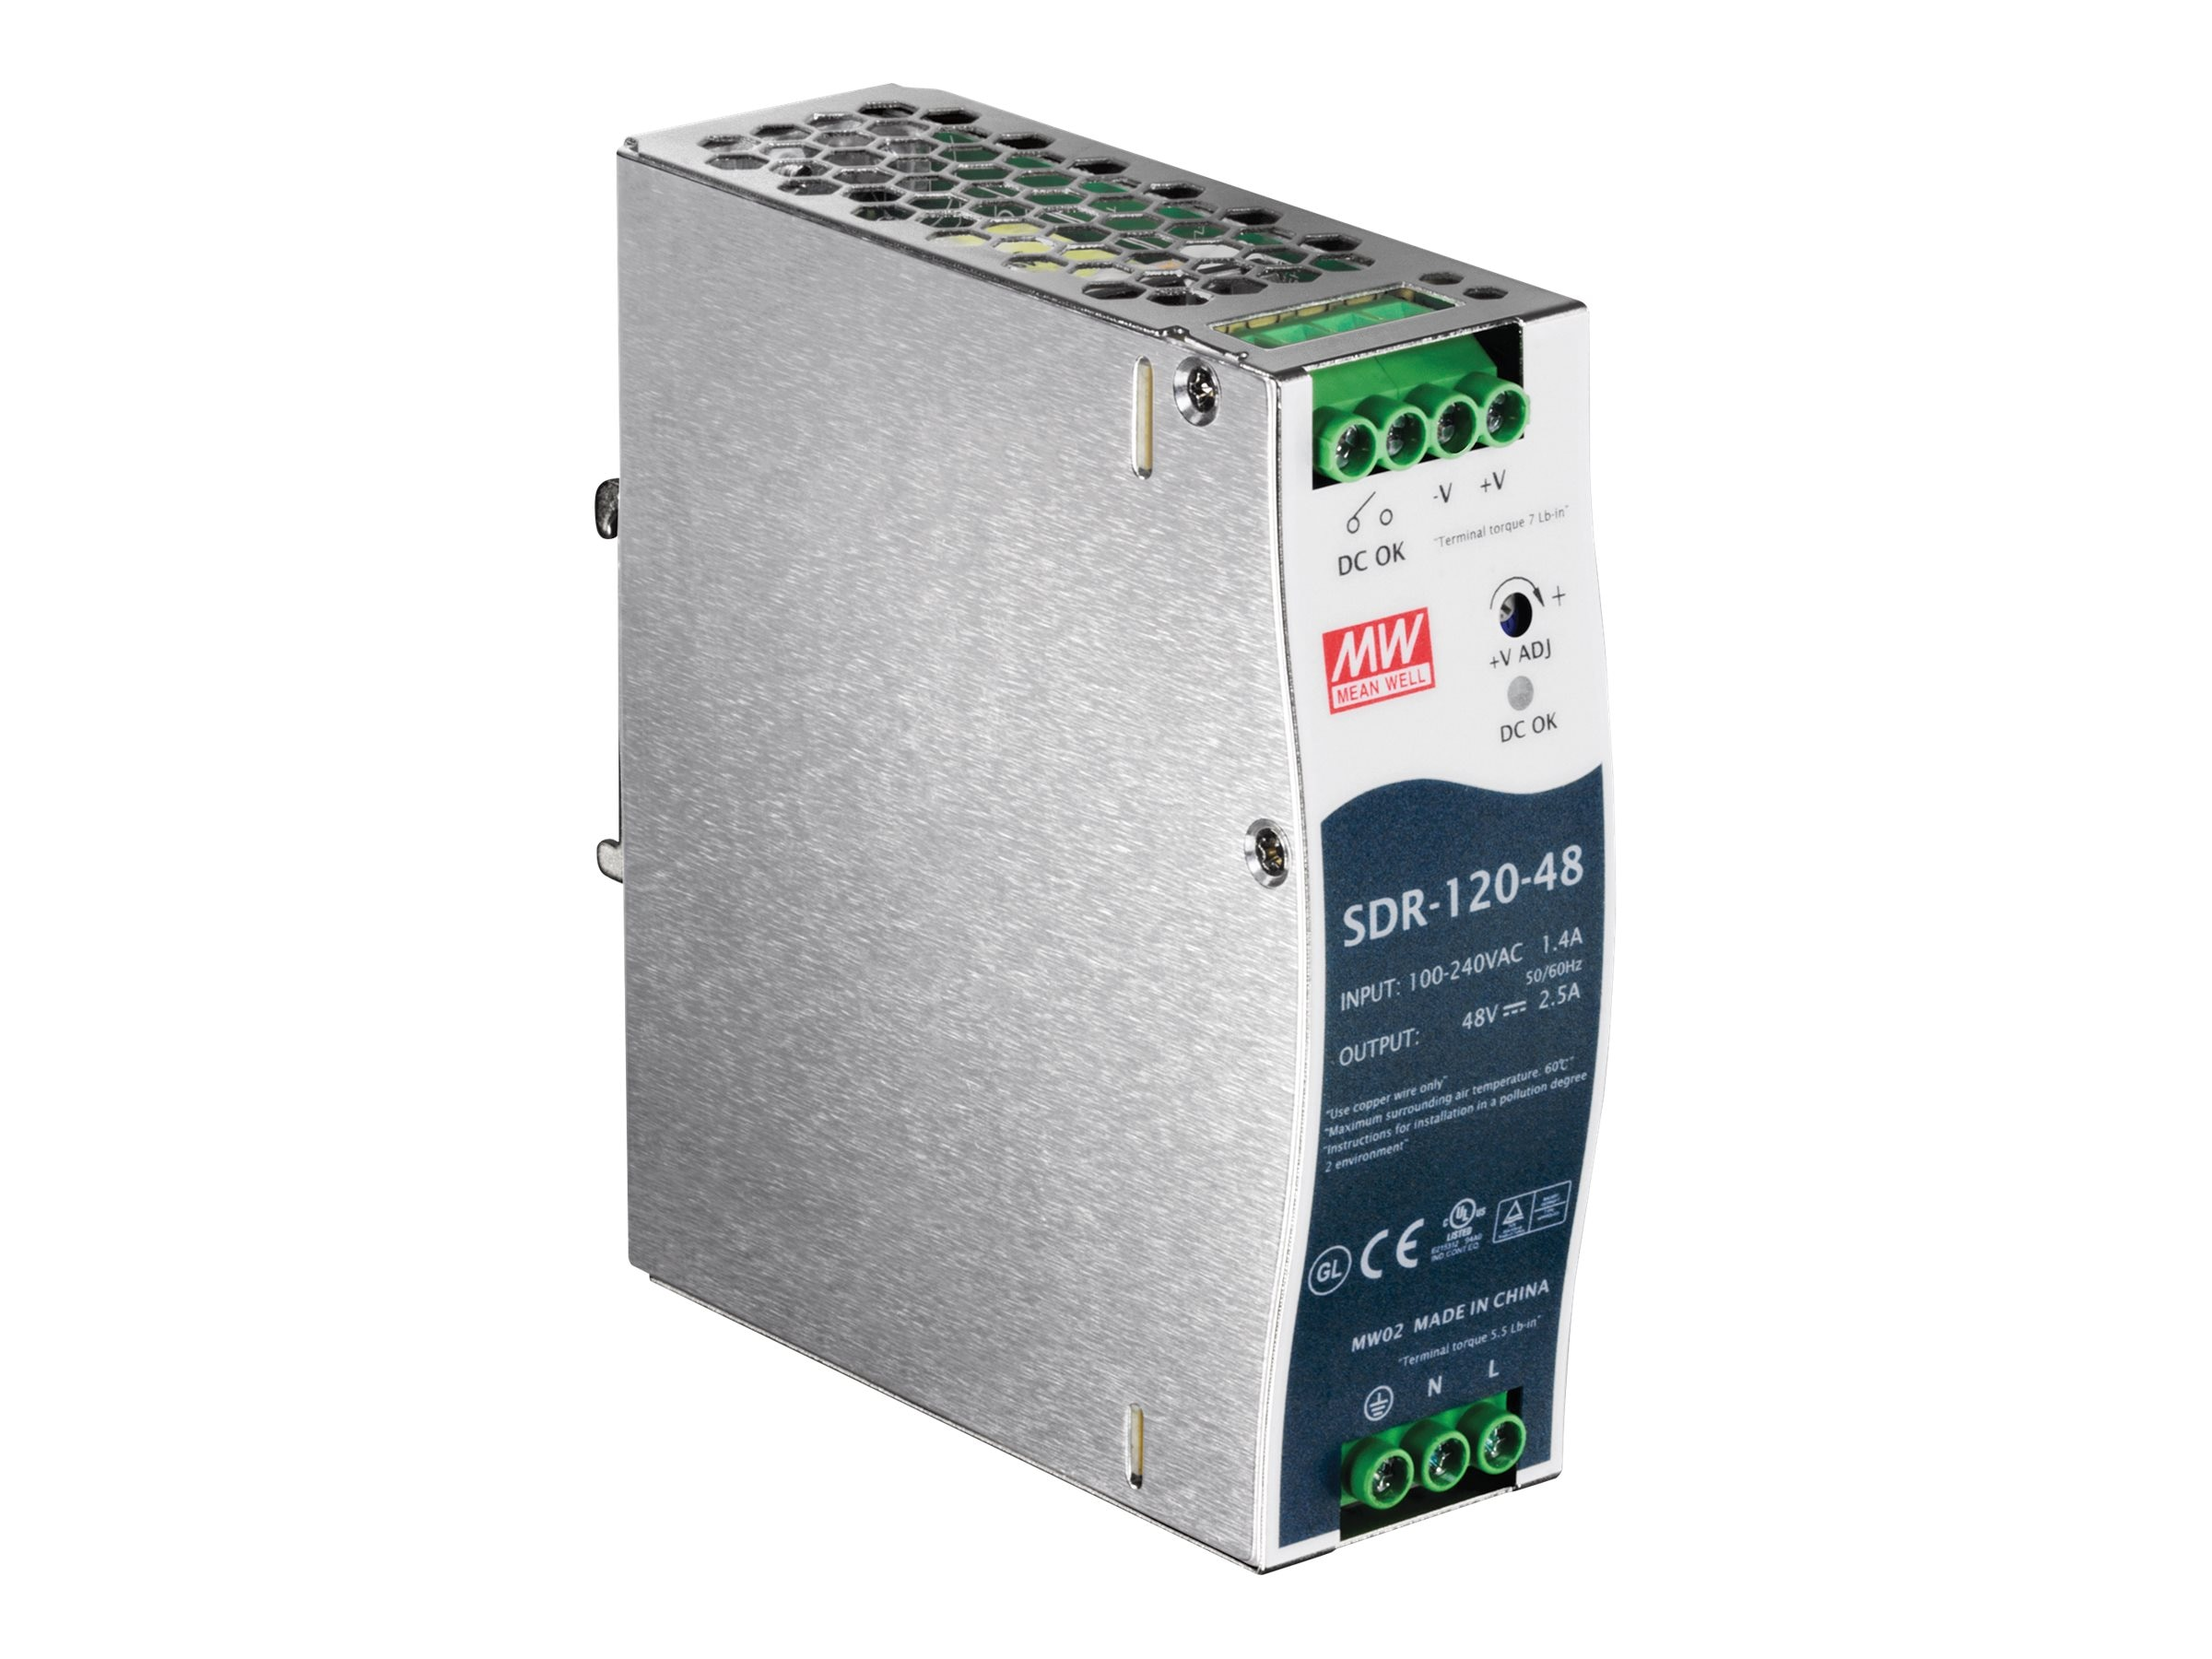 TRENDnet 120W (48V, 2.5A) Single Output Industrial DIN-Rail Power Supply, TI-S12048, 30810311, Power Supply Units (internal)